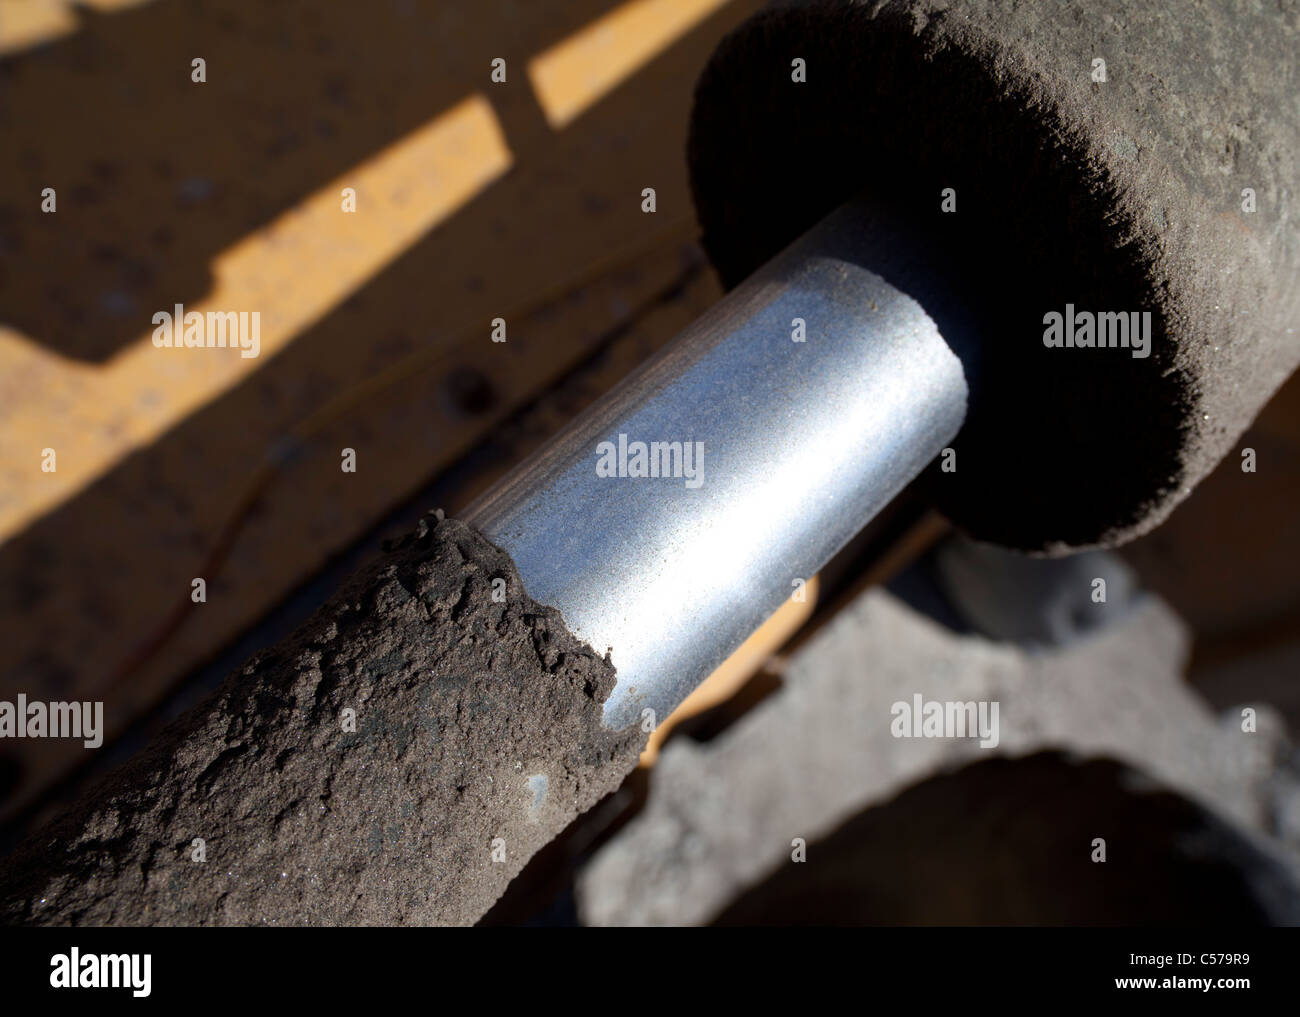 Closeup of greasy and dirty hydraulics cylinder and piston - Stock Image